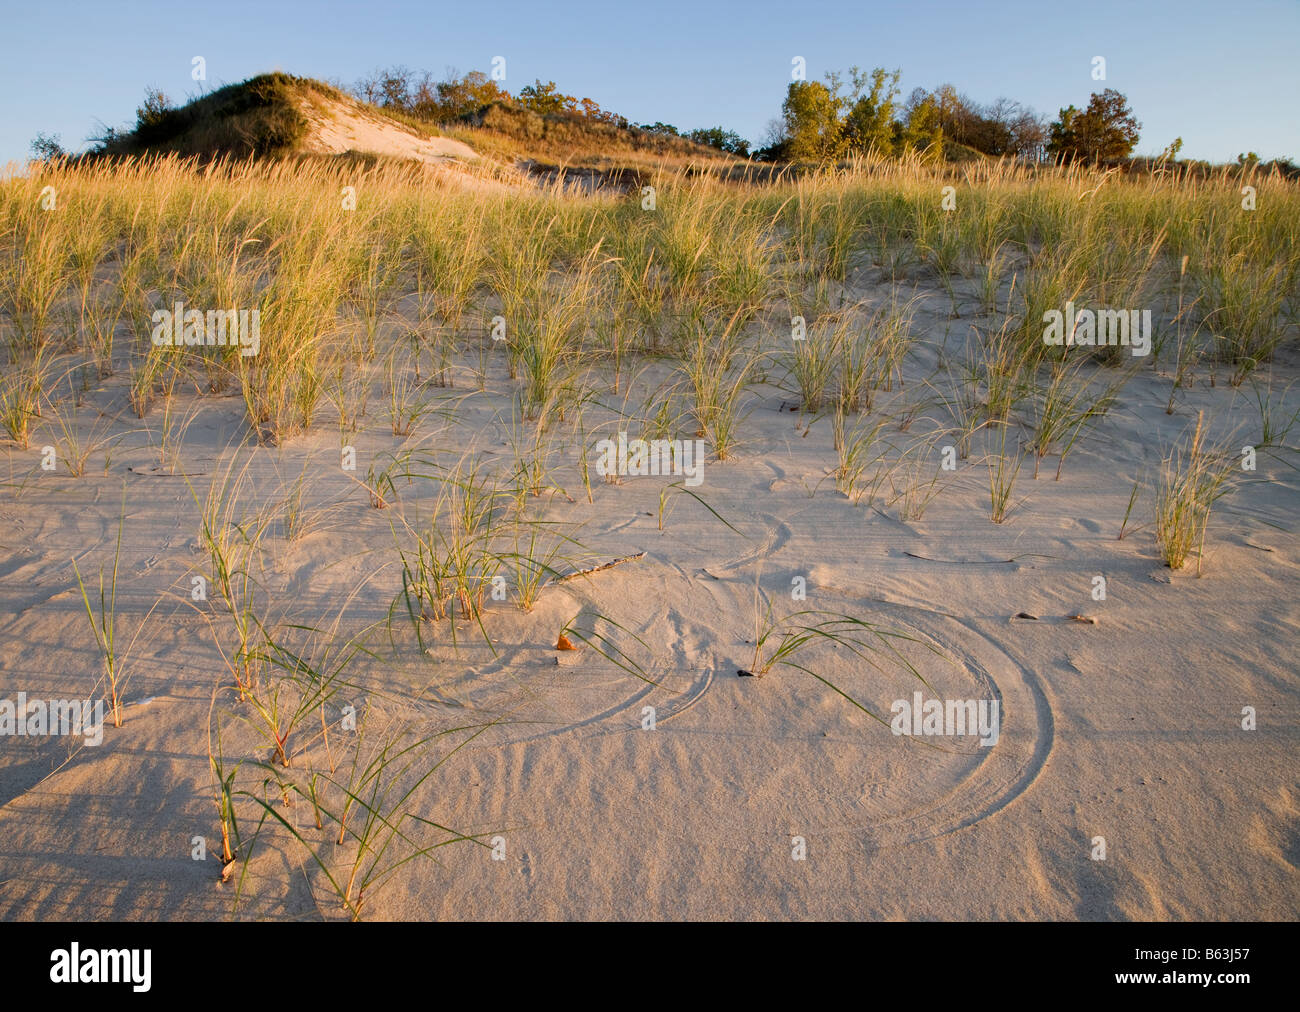 pattern in sand from wind blown grasses, Indiana Dunes State Park, Indiana - Stock Image